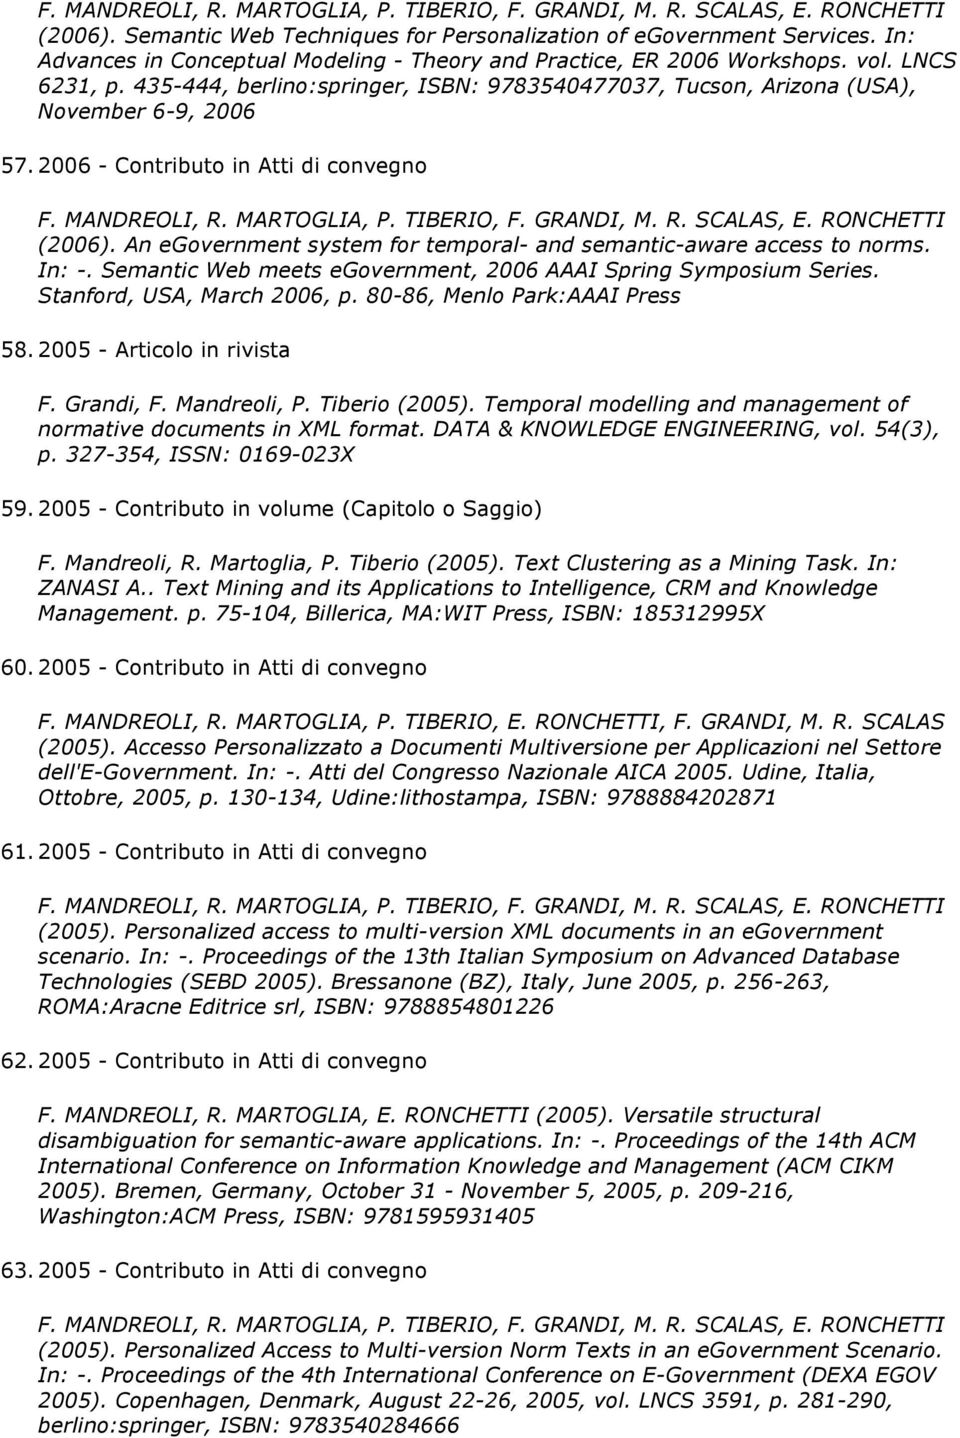 2006 - Contributo in Atti di convegno F. MANDREOLI, R. MARTOGLIA, P. TIBERIO, F. GRANDI, M. R. SCALAS, E. RONCHETTI (2006). An egovernment system for temporal- and semantic-aware access to norms.